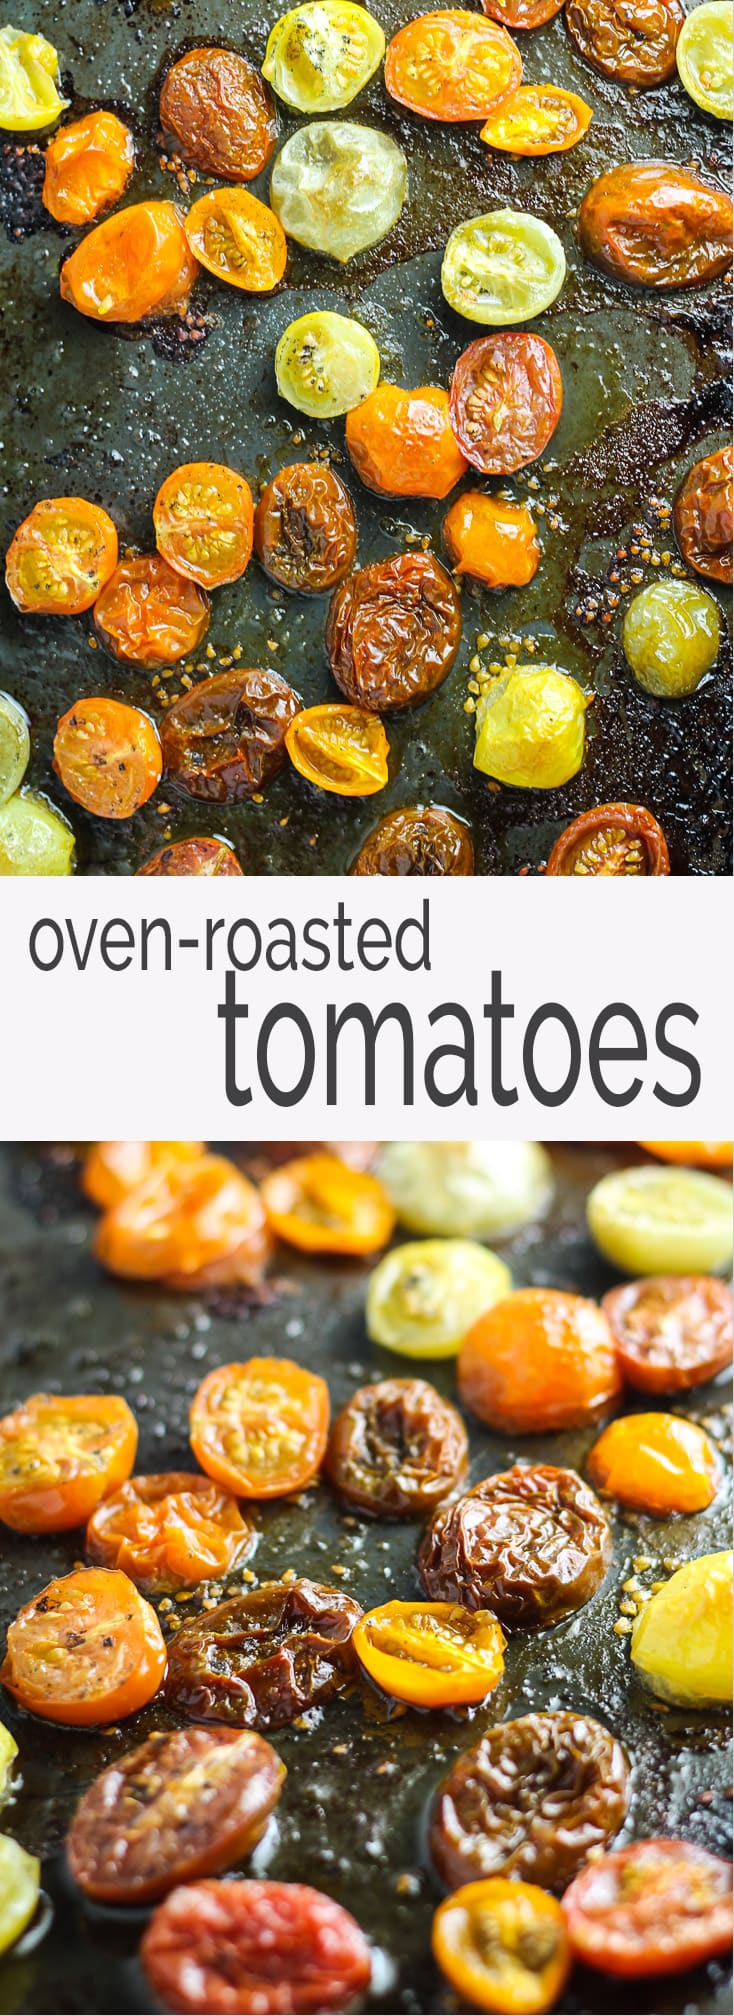 Add a boost of umami to pasta and pizza with these easy, Low Fodmap Roasted Tomatoes. Just three simple ingredients - cherry tomatoes, garlic-infused olive oil and sea salt!